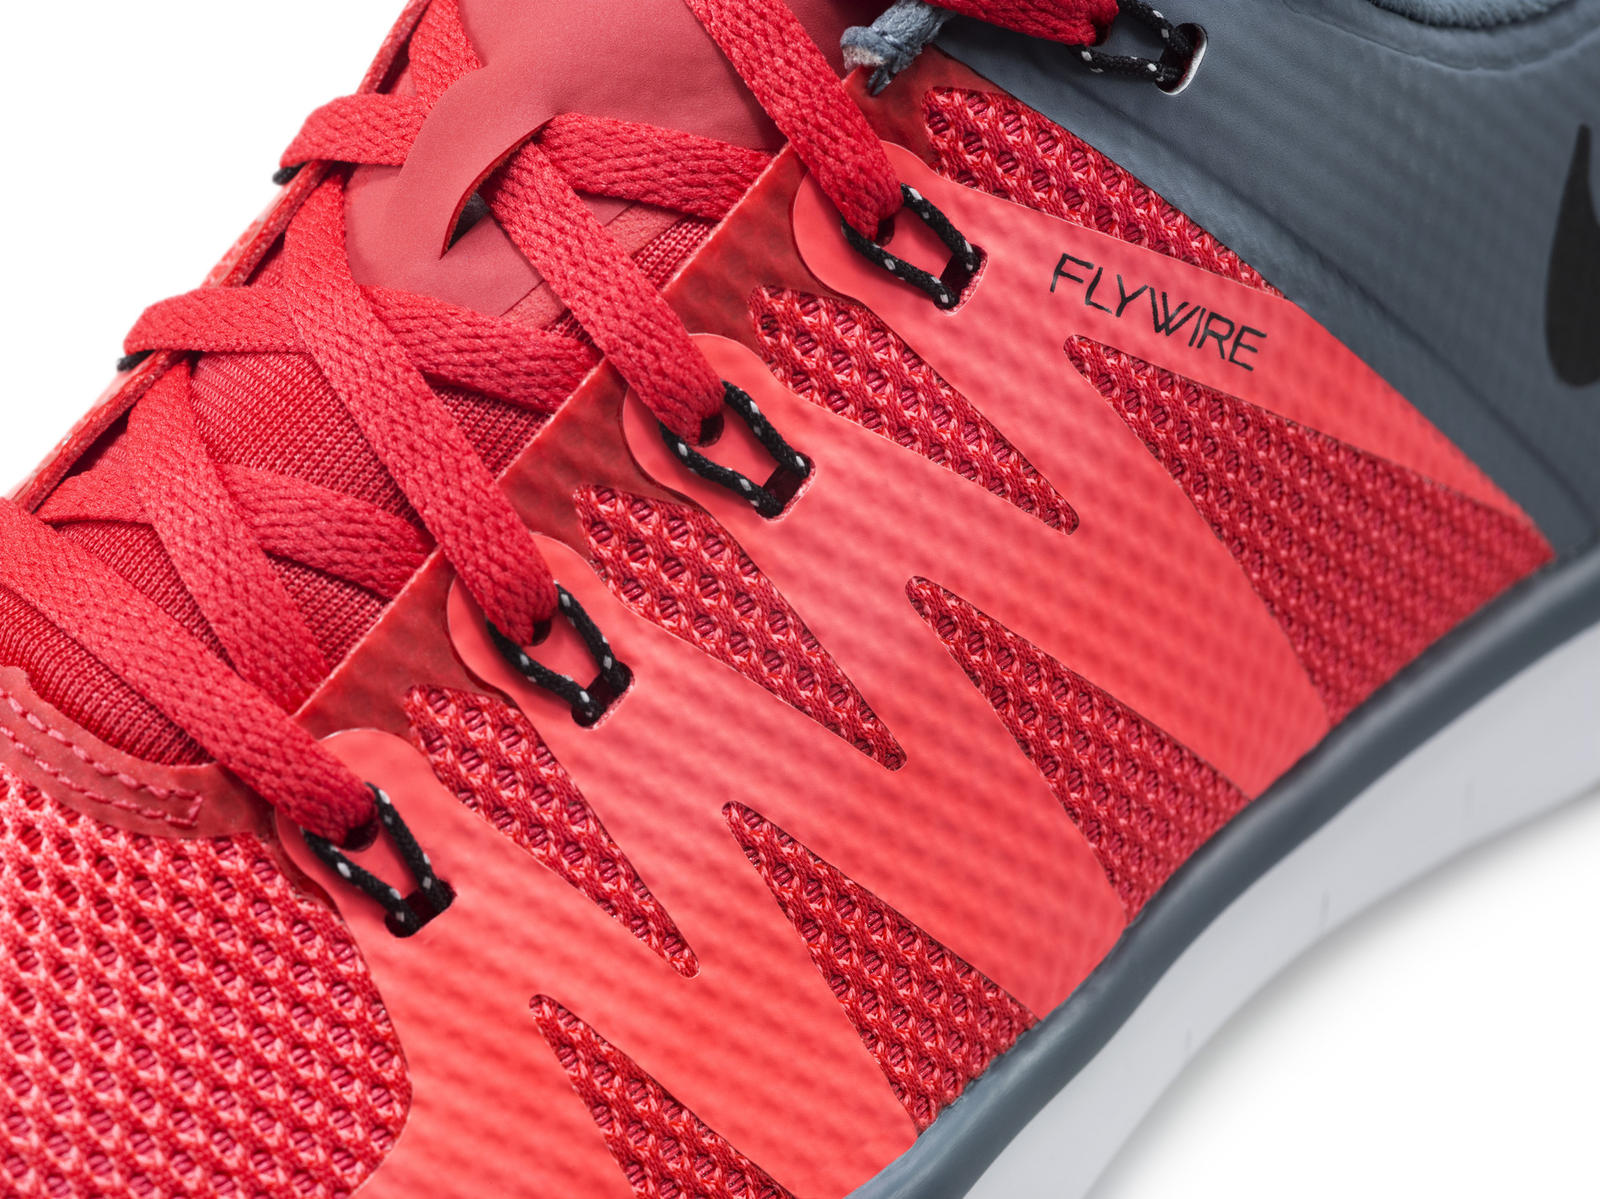 Nike Free Trainer 5.0 Built to Meet the